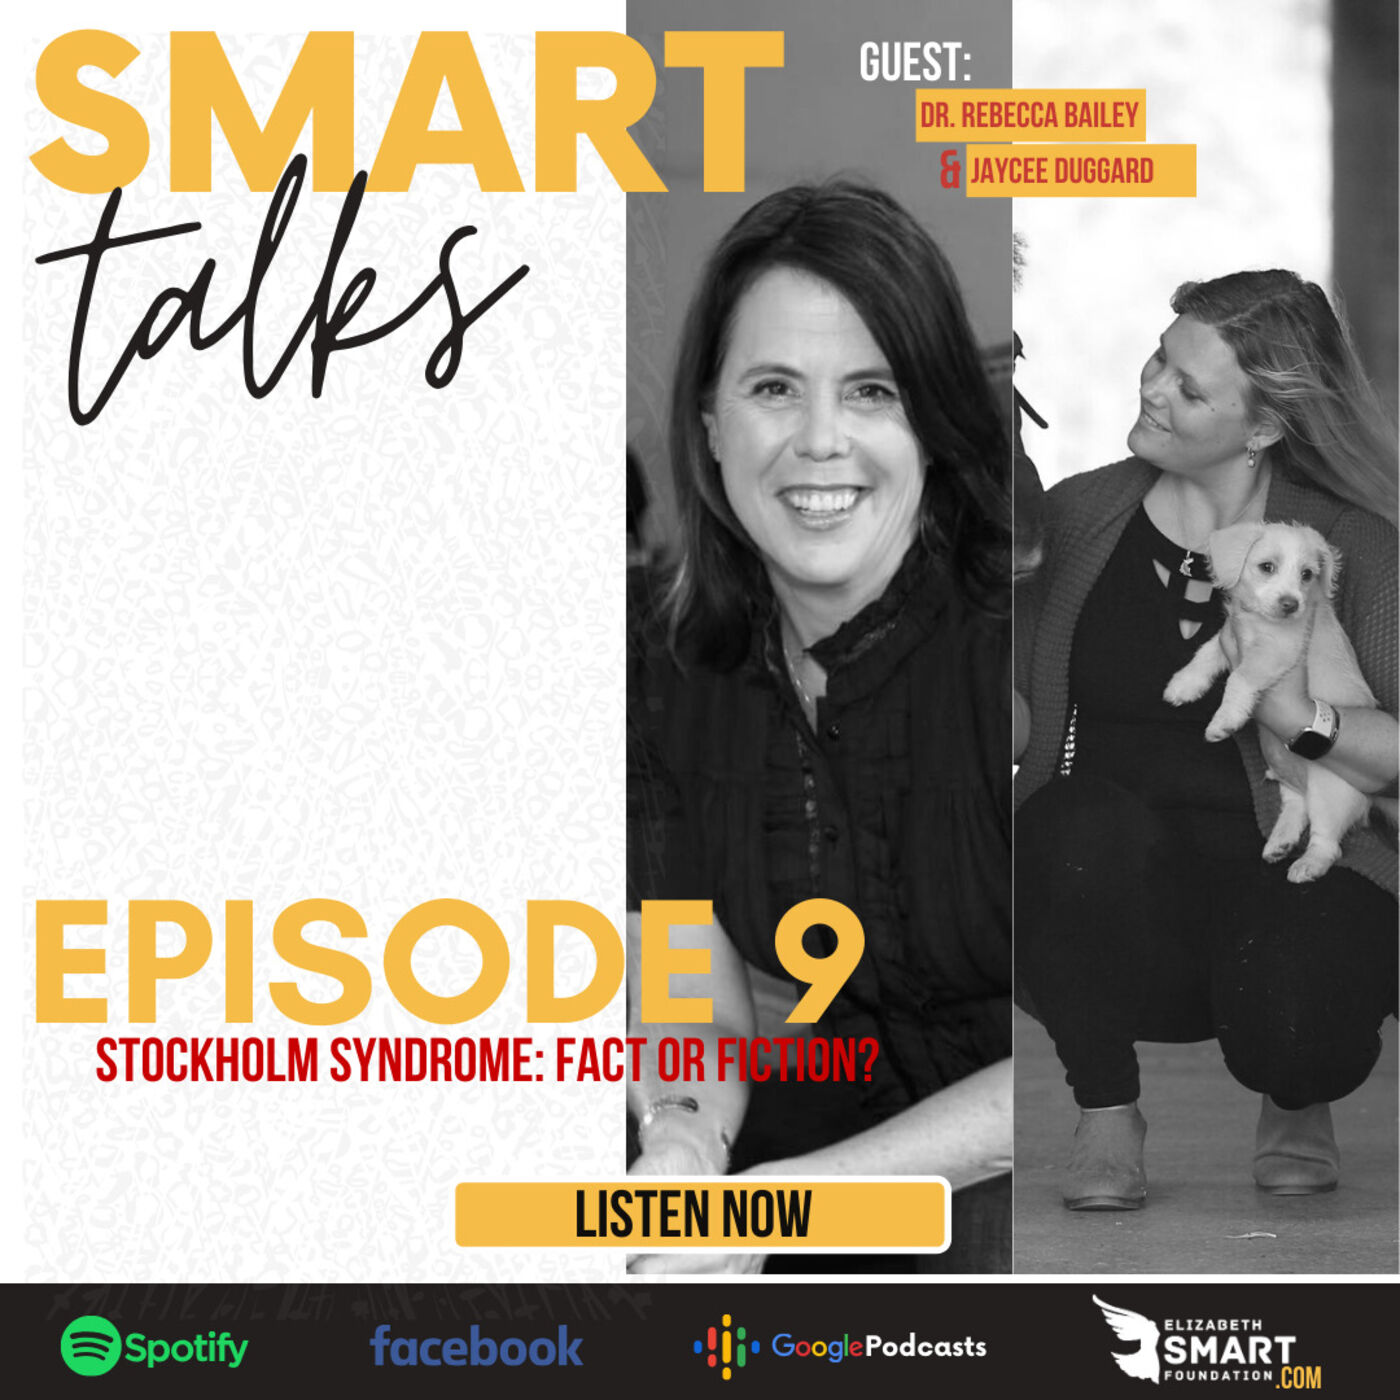 Episode 9: Stockholm Syndrome, fact or fiction?